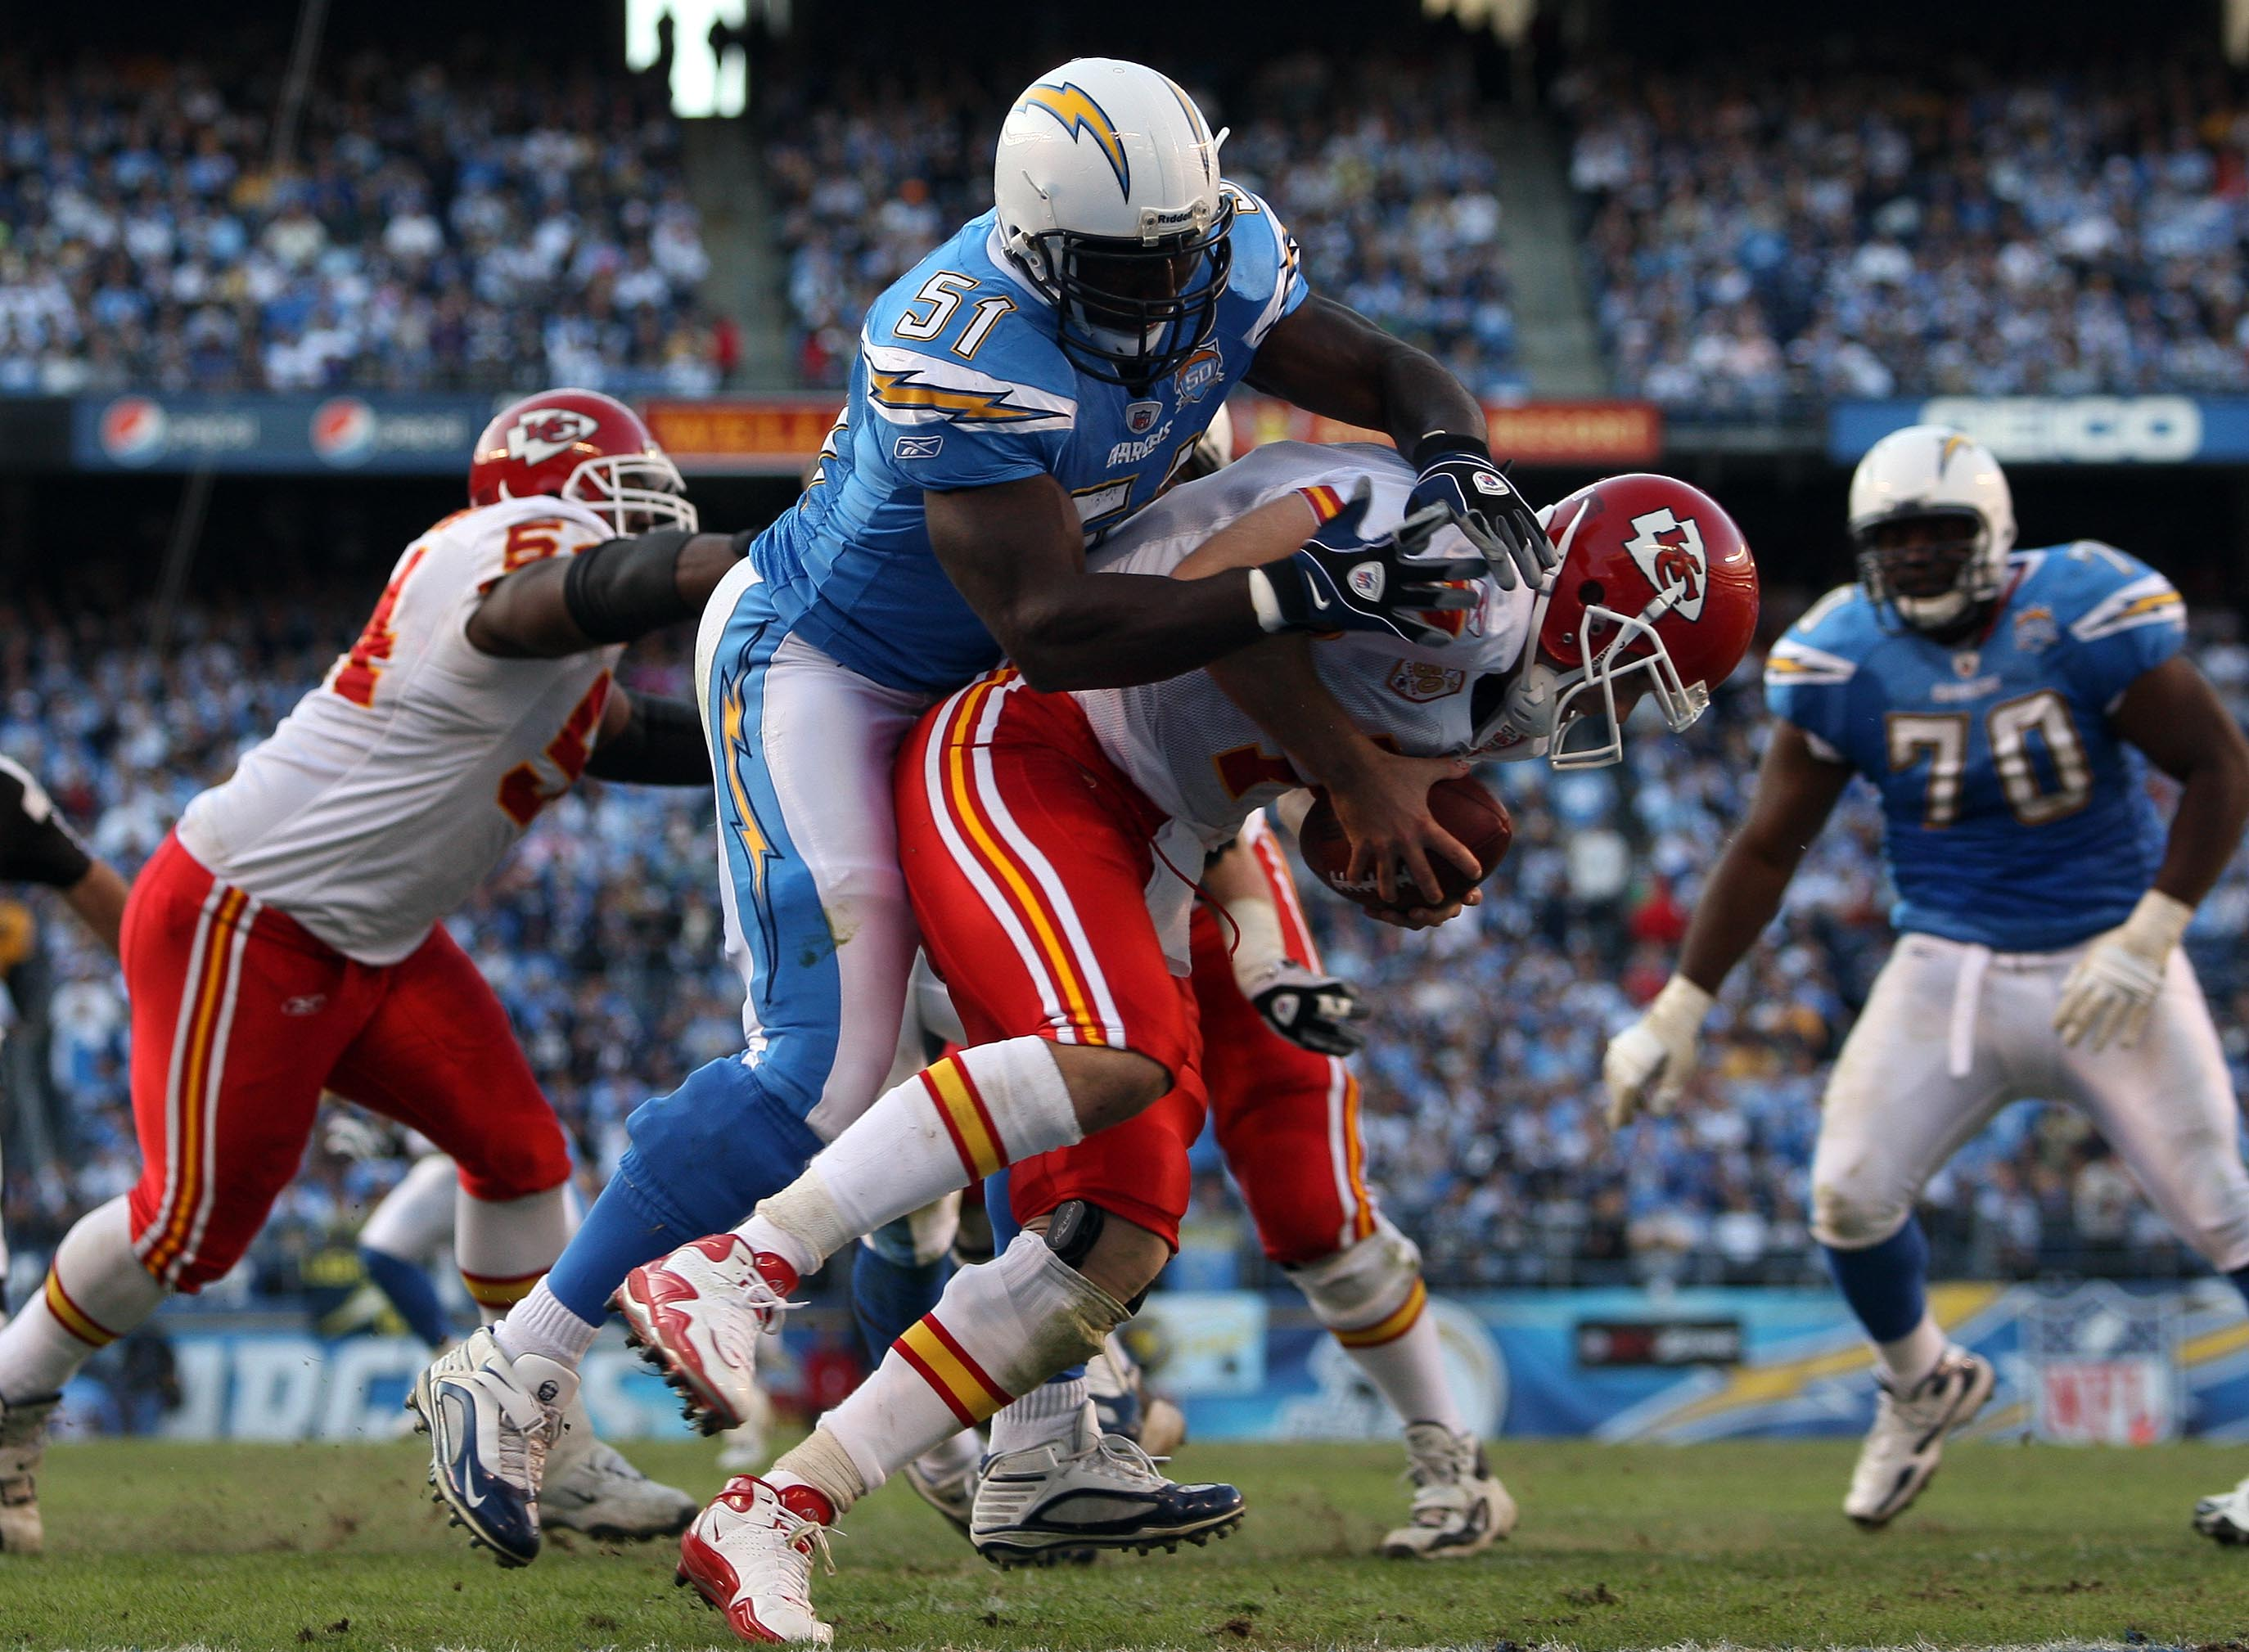 SAN DIEGO, CA - NOVEMBER 29:   Linebacker Tim Dobbins #51 of the San Diego Chargers sacks Quarterback Matt Cassel #7 of the Kansas City Chiefs for a safety during the NFL game on November 29, 2009 at Qualcomm Stadium in San Diego, California.  (Photo by D